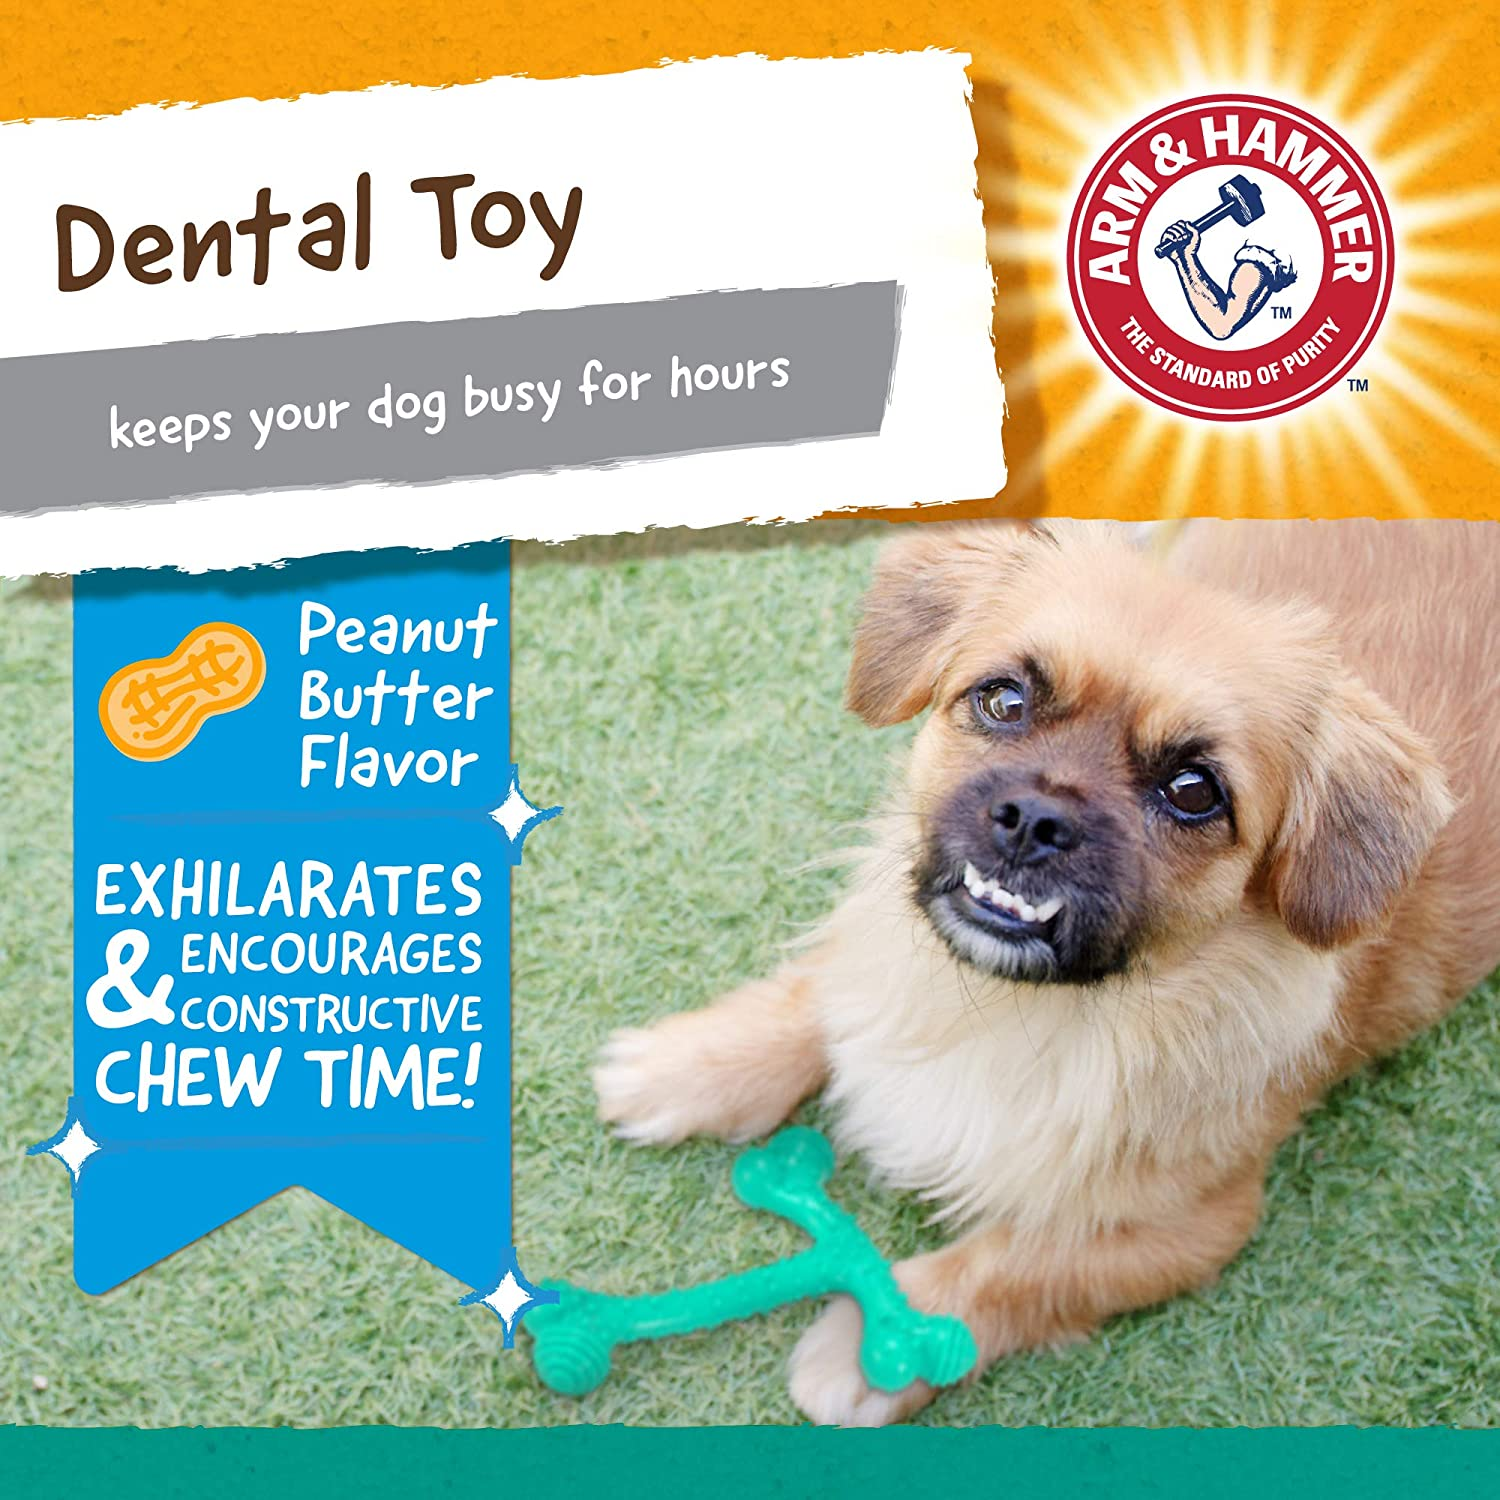 T-Bone Dental Chew Toy for Dogs and Super Treadz Gator /& Gorilla Chew Toy for Dogs